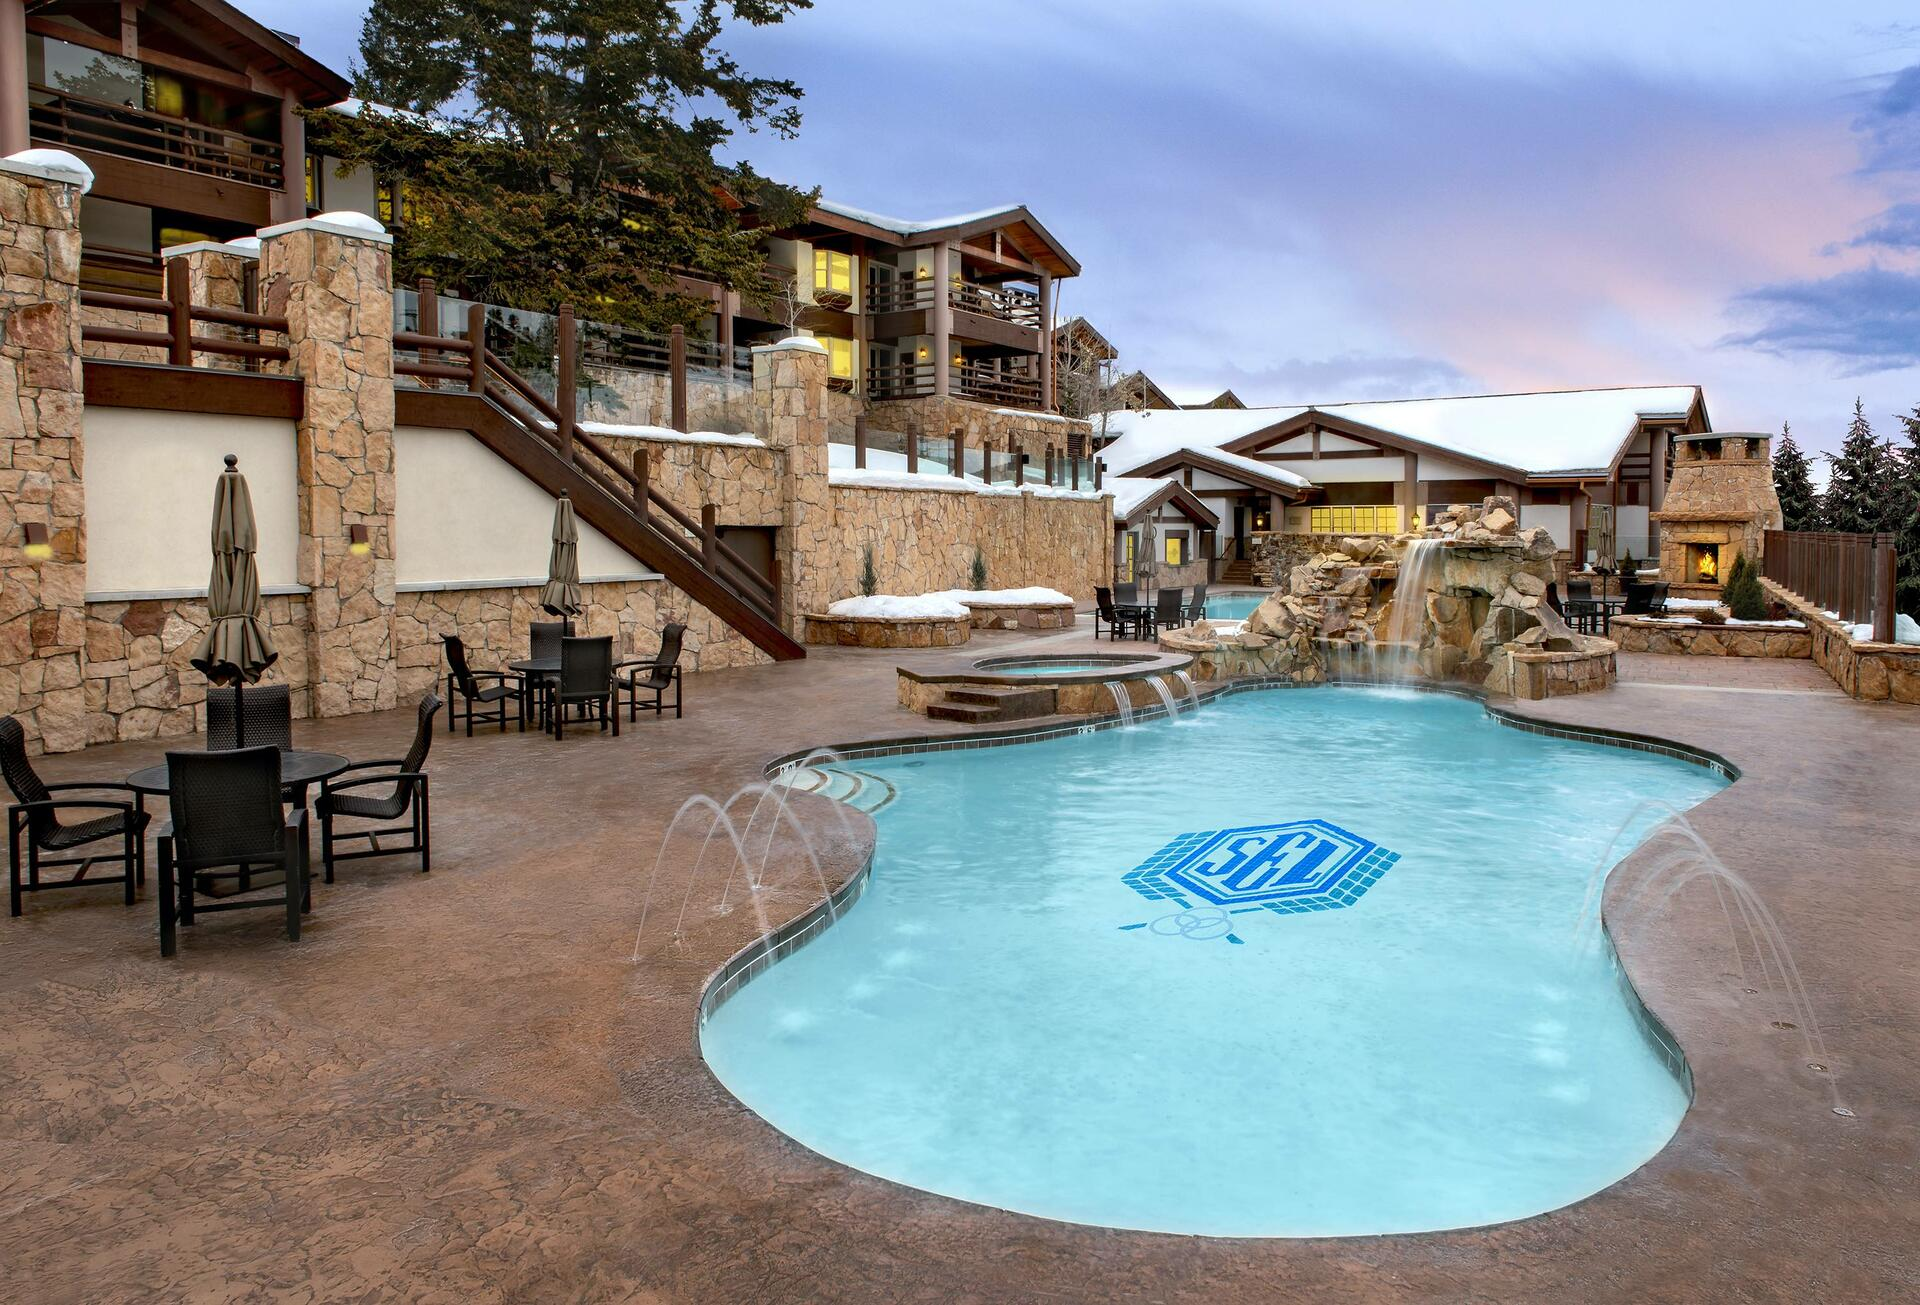 a pool in front of a lodge